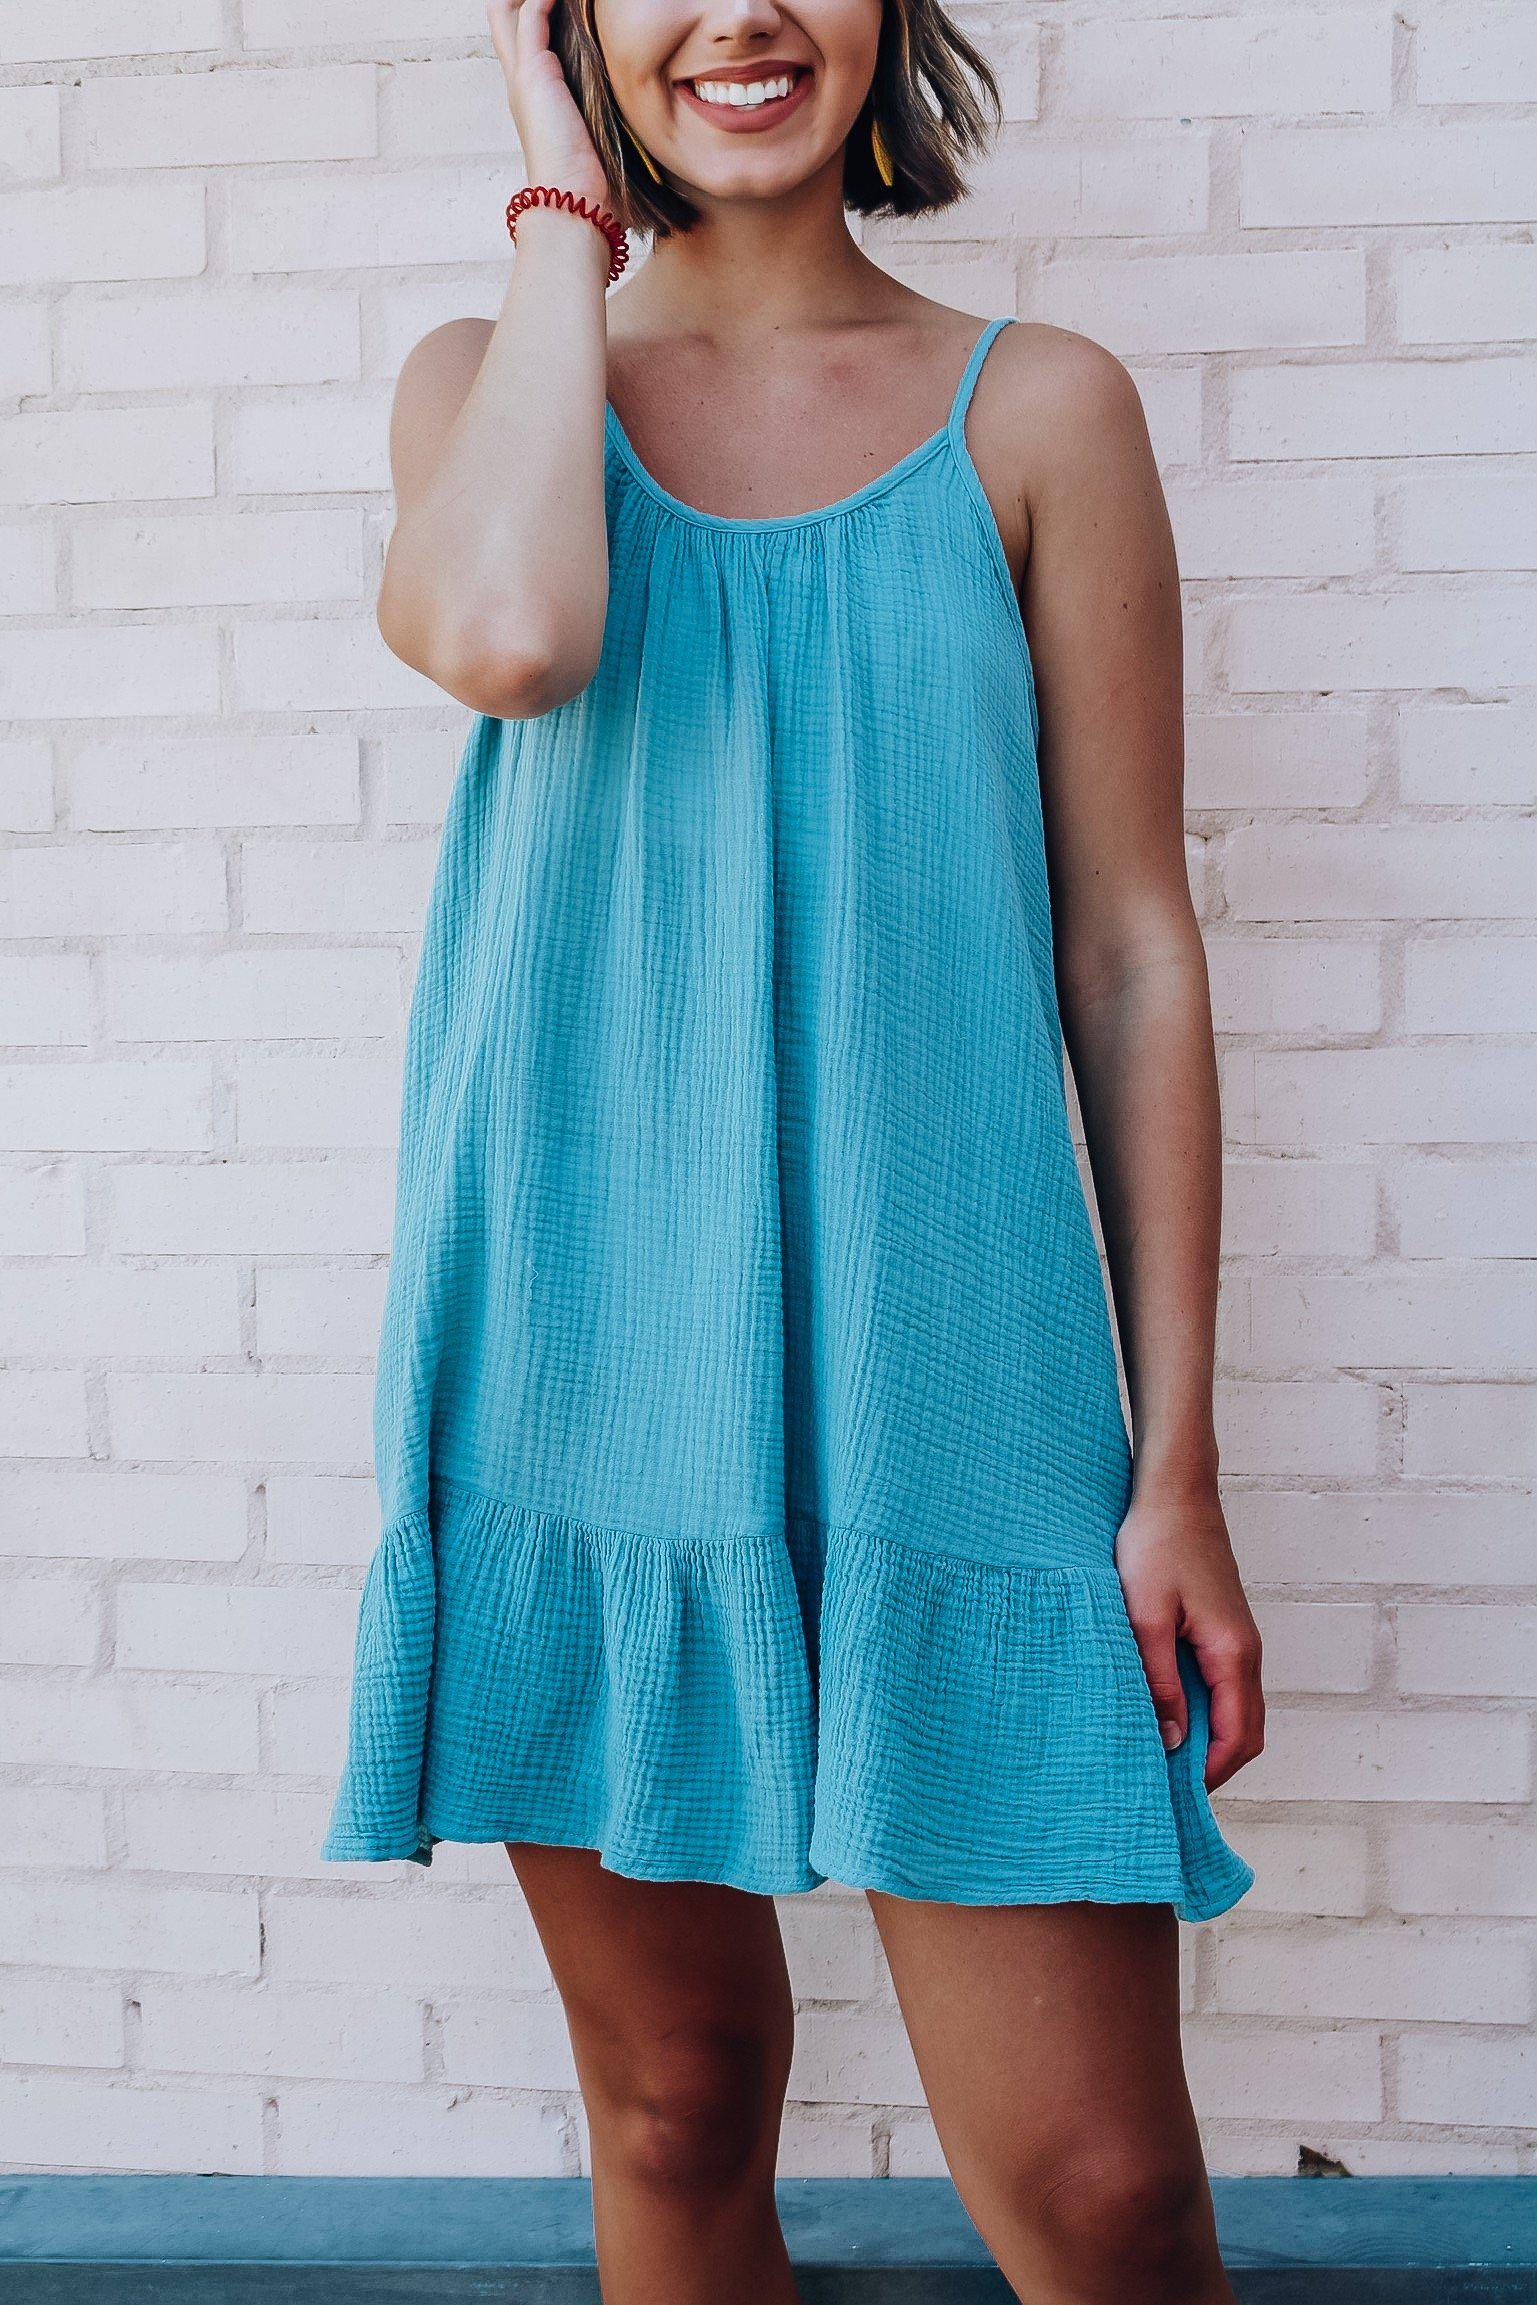 Farmers Market Dress-Women's DRESS-New Arrivals-Runway Seven